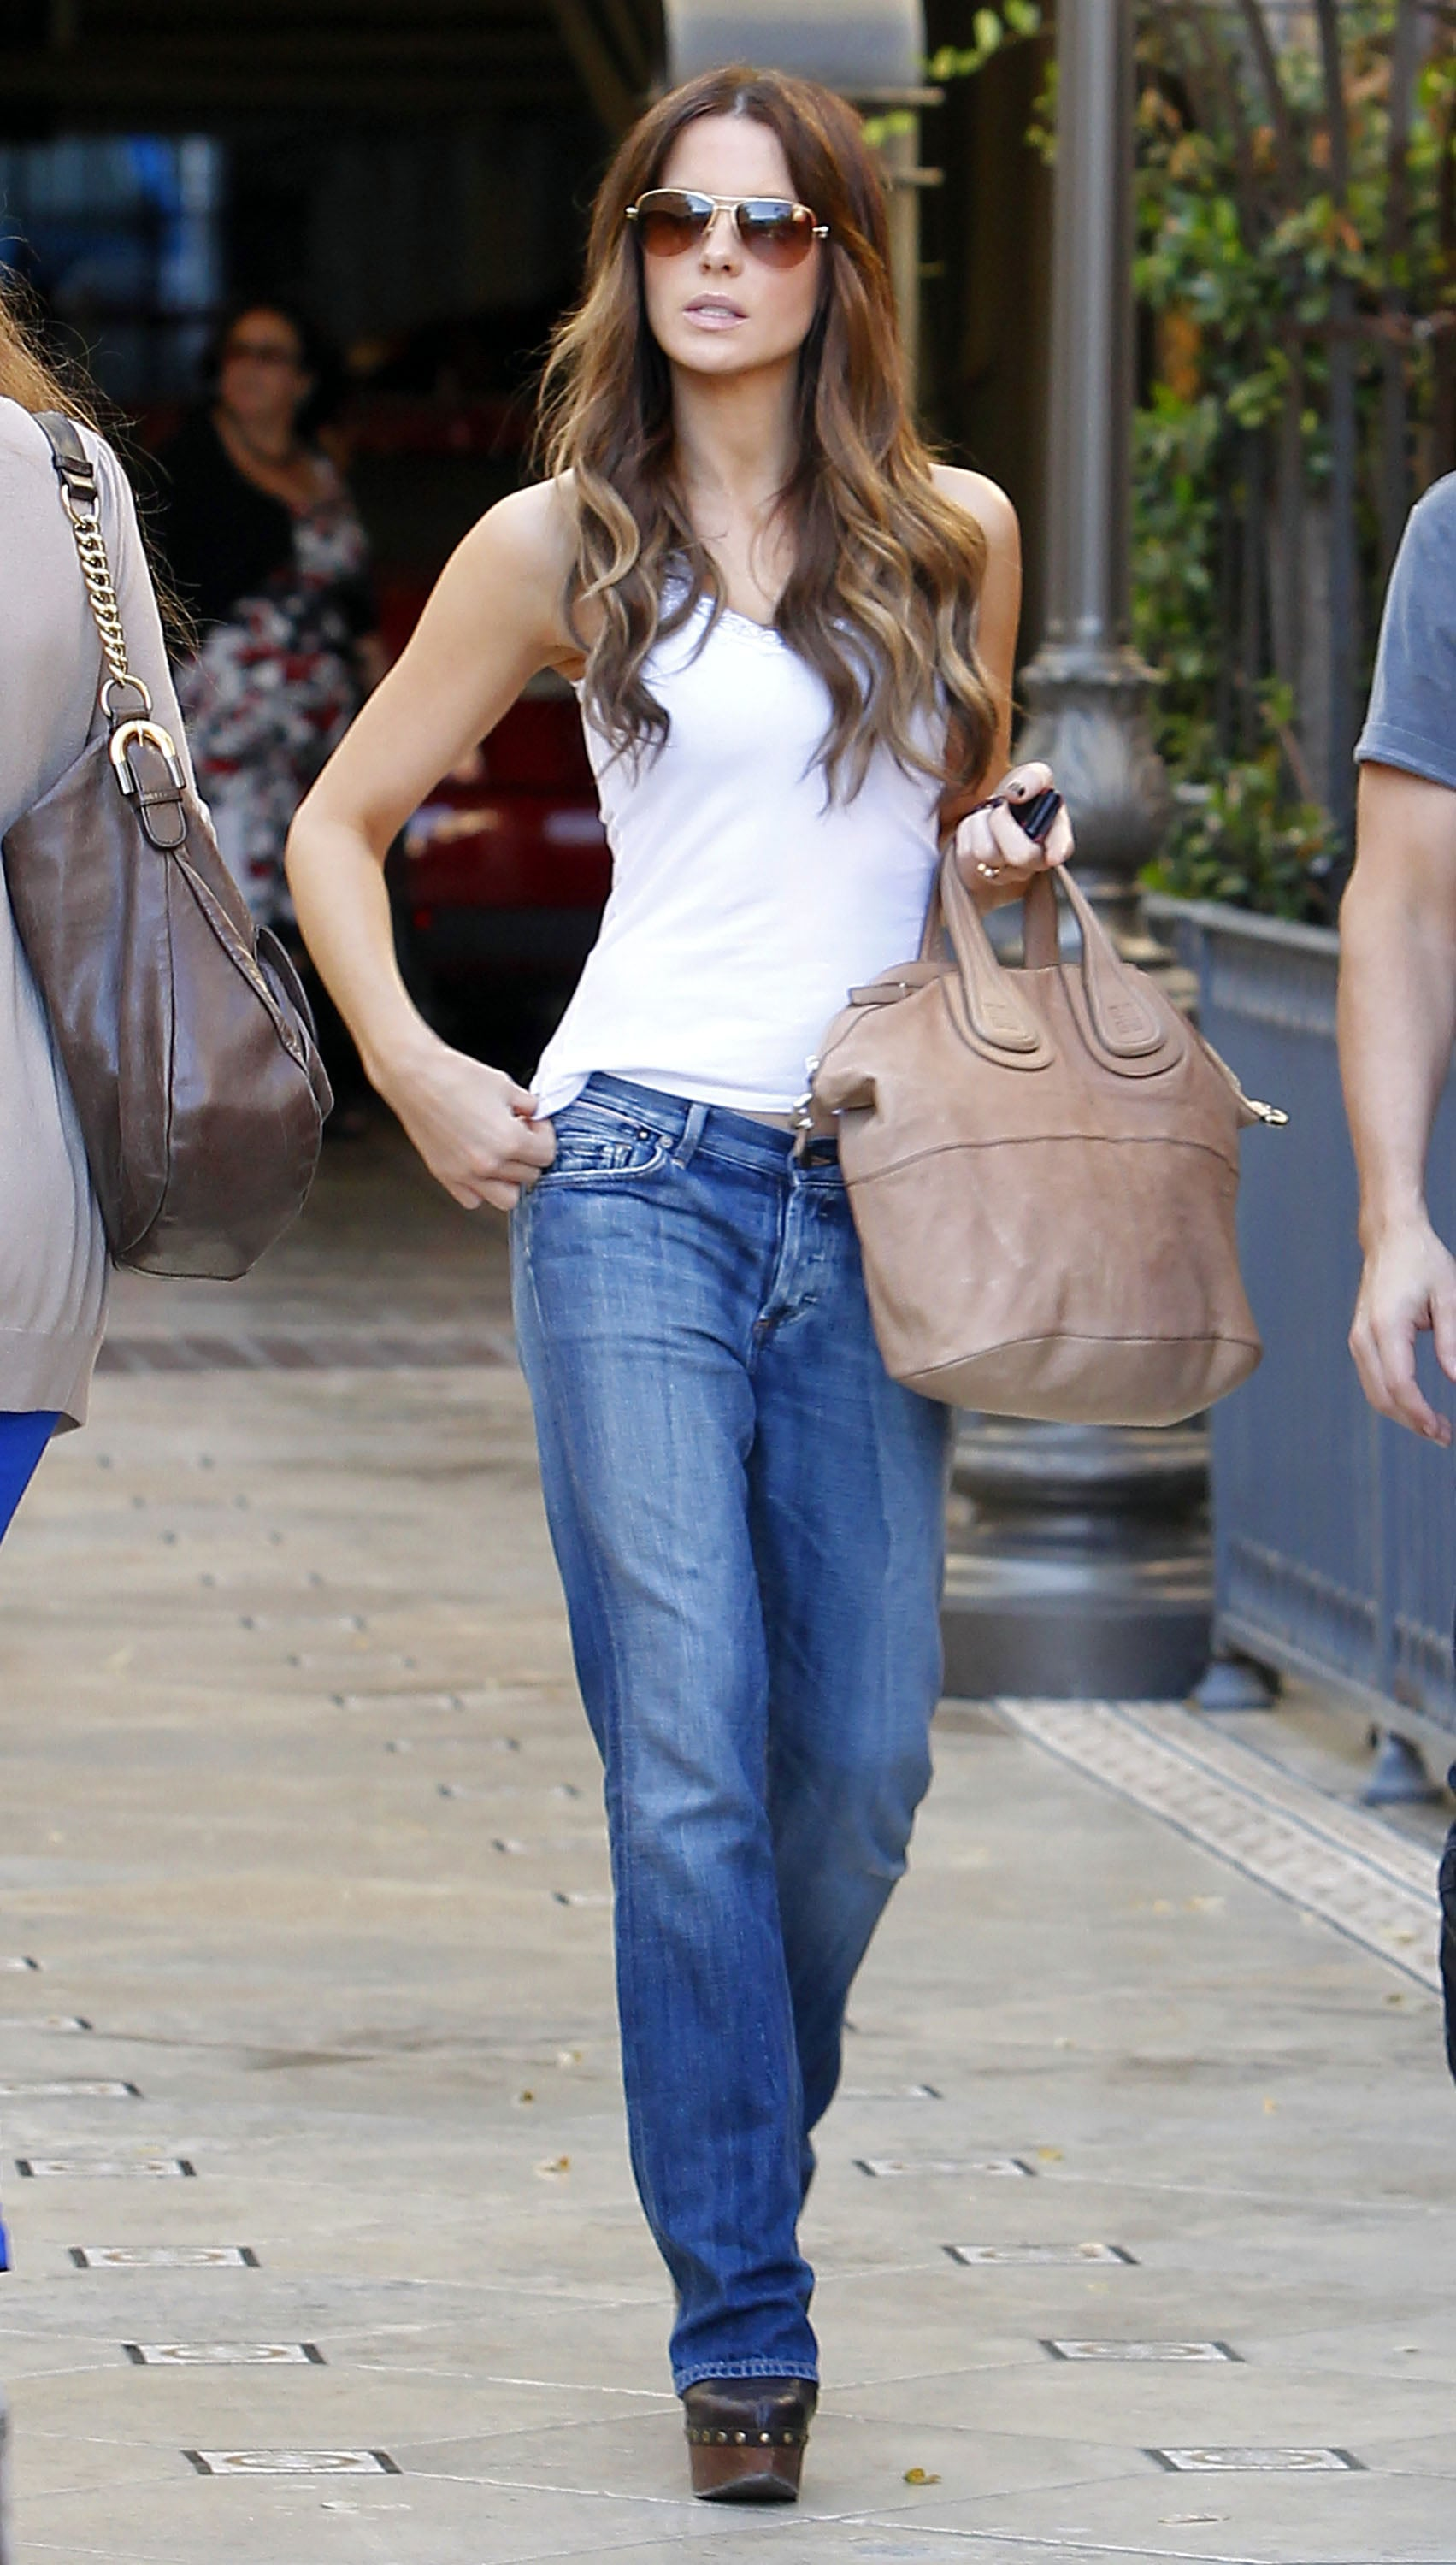 She makes easy work of the sort of outfit red-blooded males are always claiming to prefer: easy jeans and a plain white top. She's not scared of the boyfriend jean, either, wearing an oversize pair that nearly swallowed her frame (and still looked amazing!).